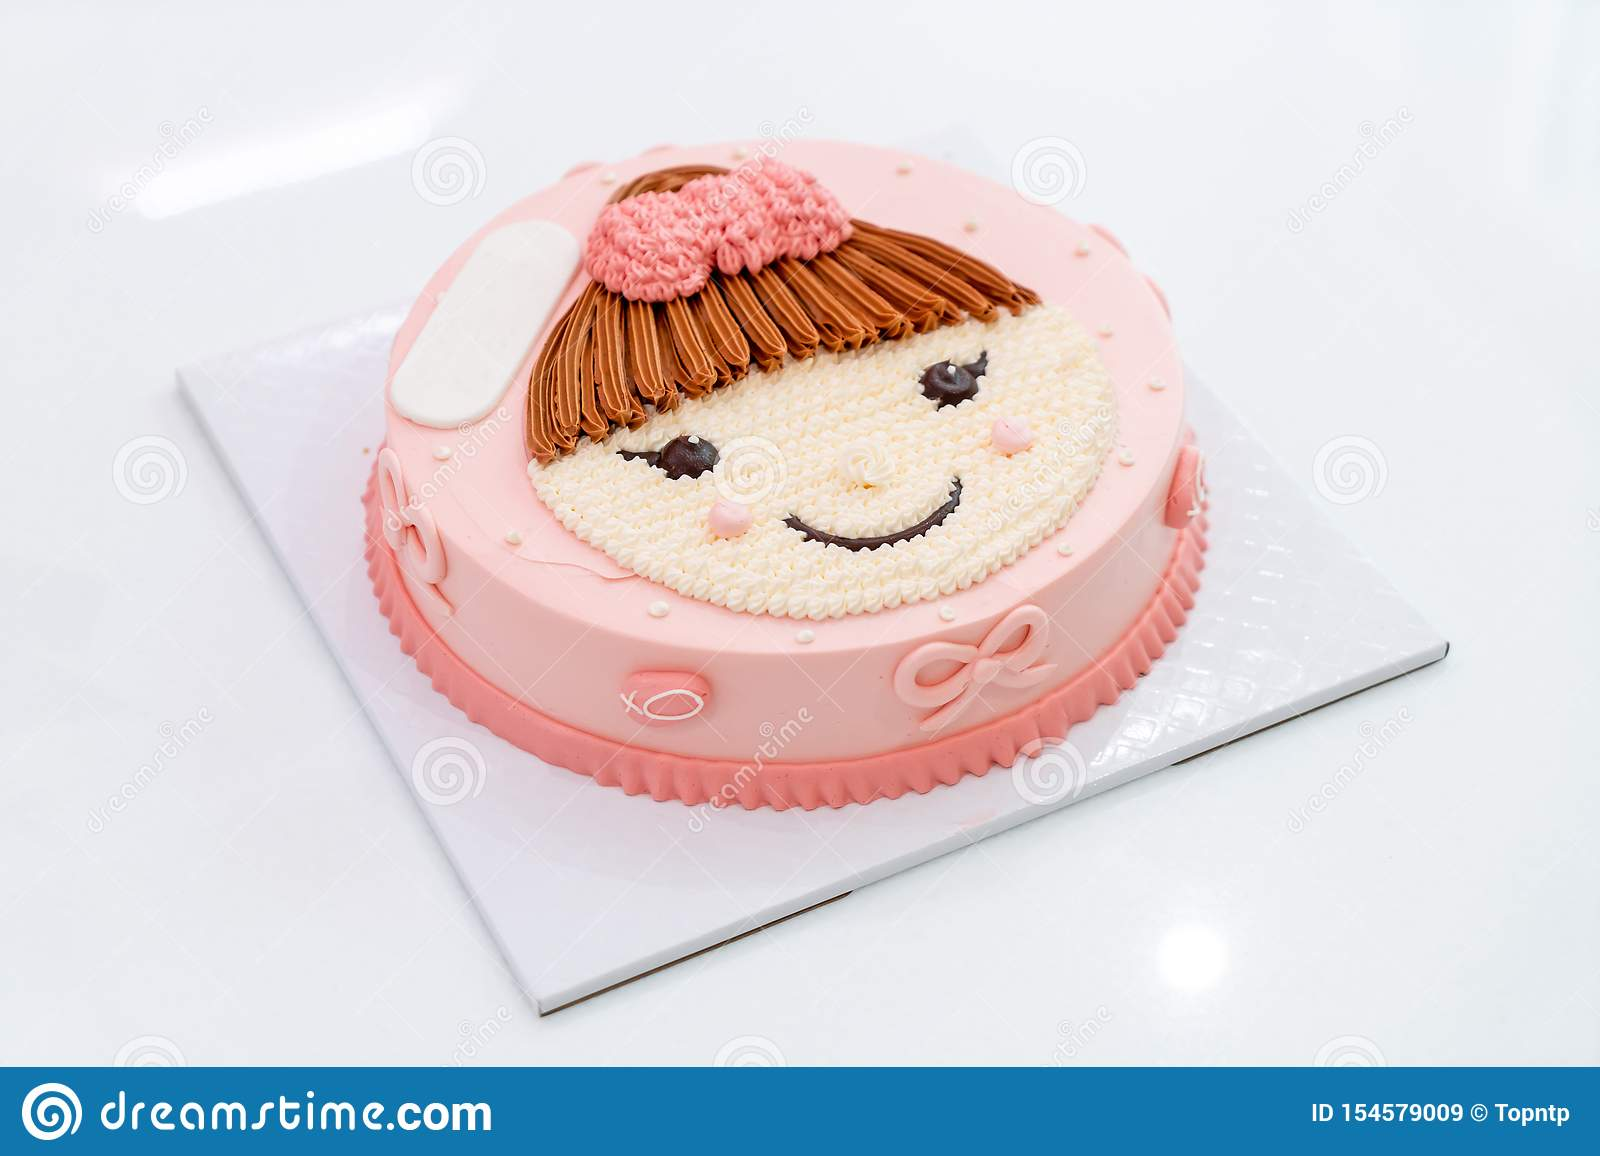 Happy Birthday Cake With Girl On Top Cake Stock Image Image Of Colorful Girl 154579009